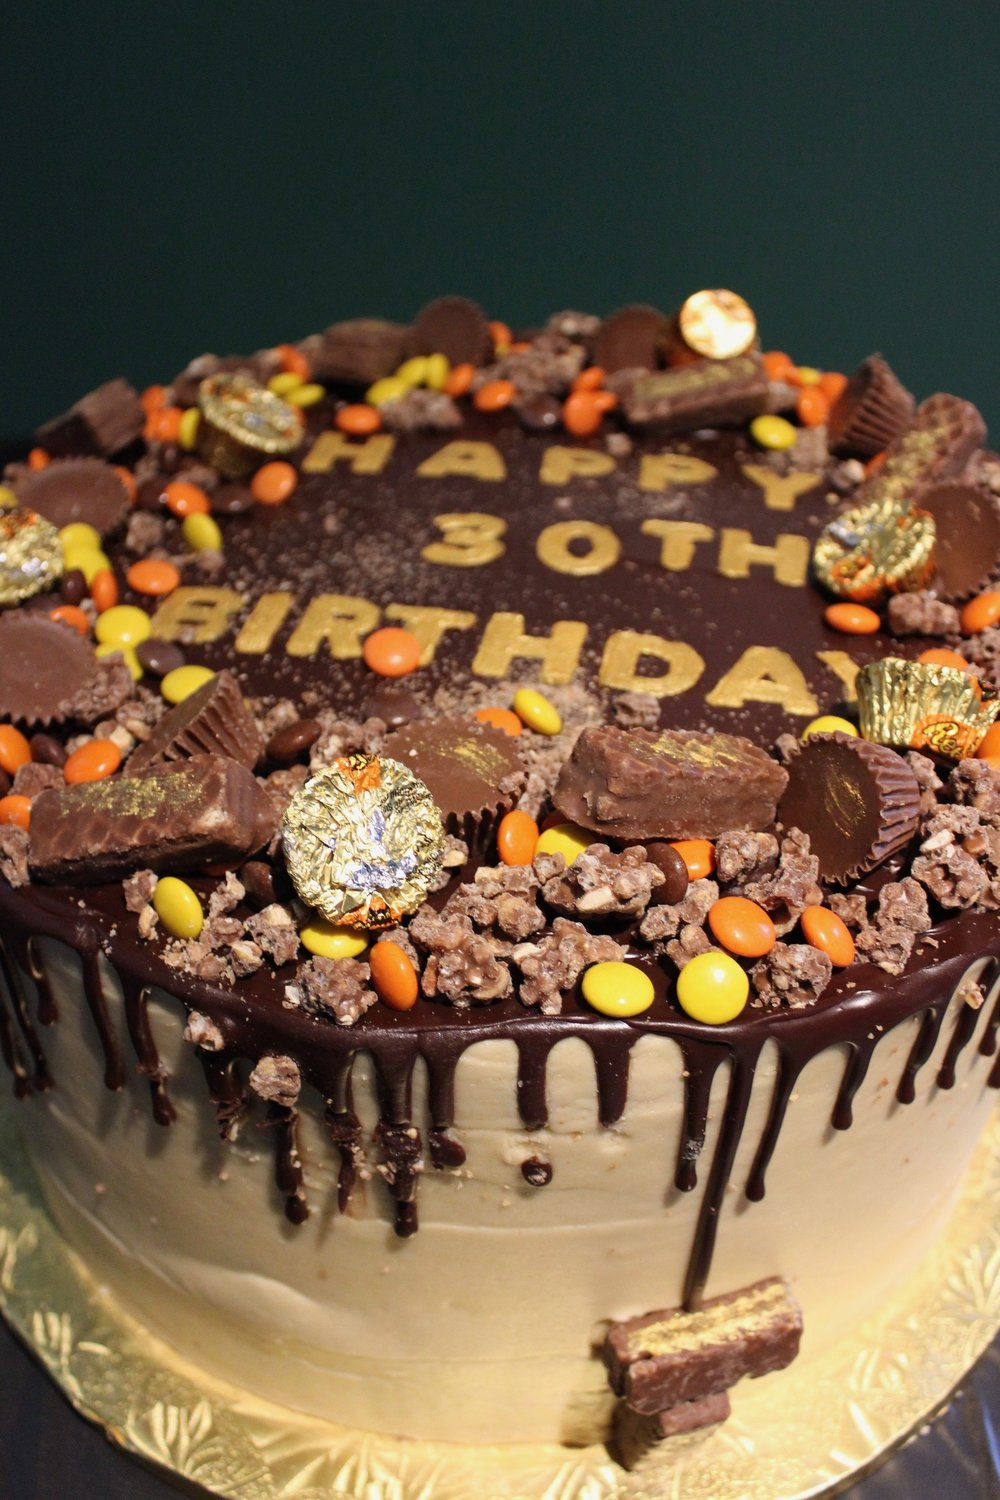 The insane chocolate peanut butter cake by The Confectionist.